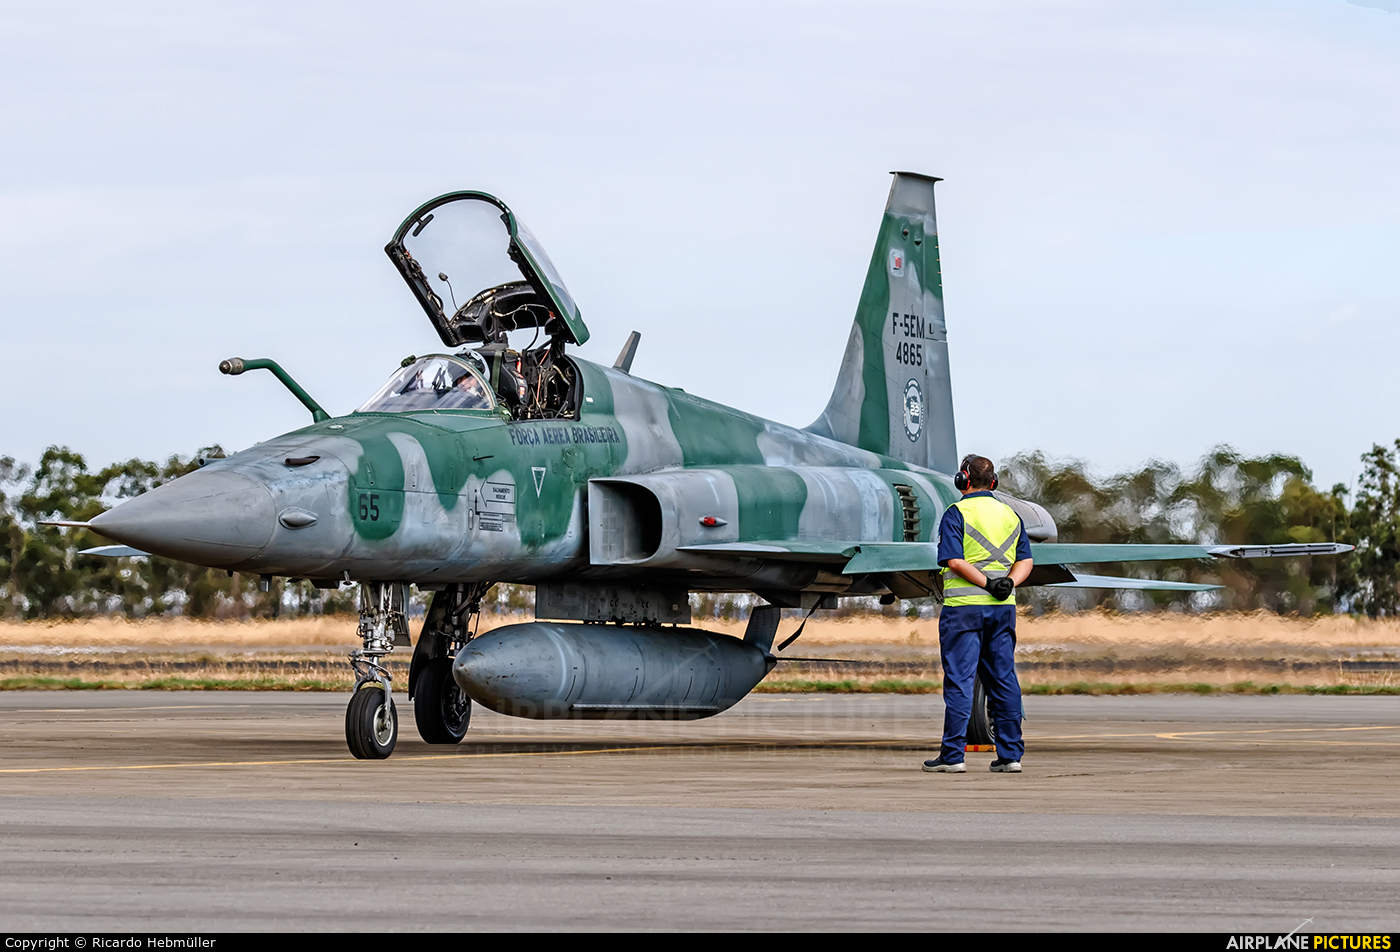 Brazil - Air Force 4865 aircraft at Undisclosed Location